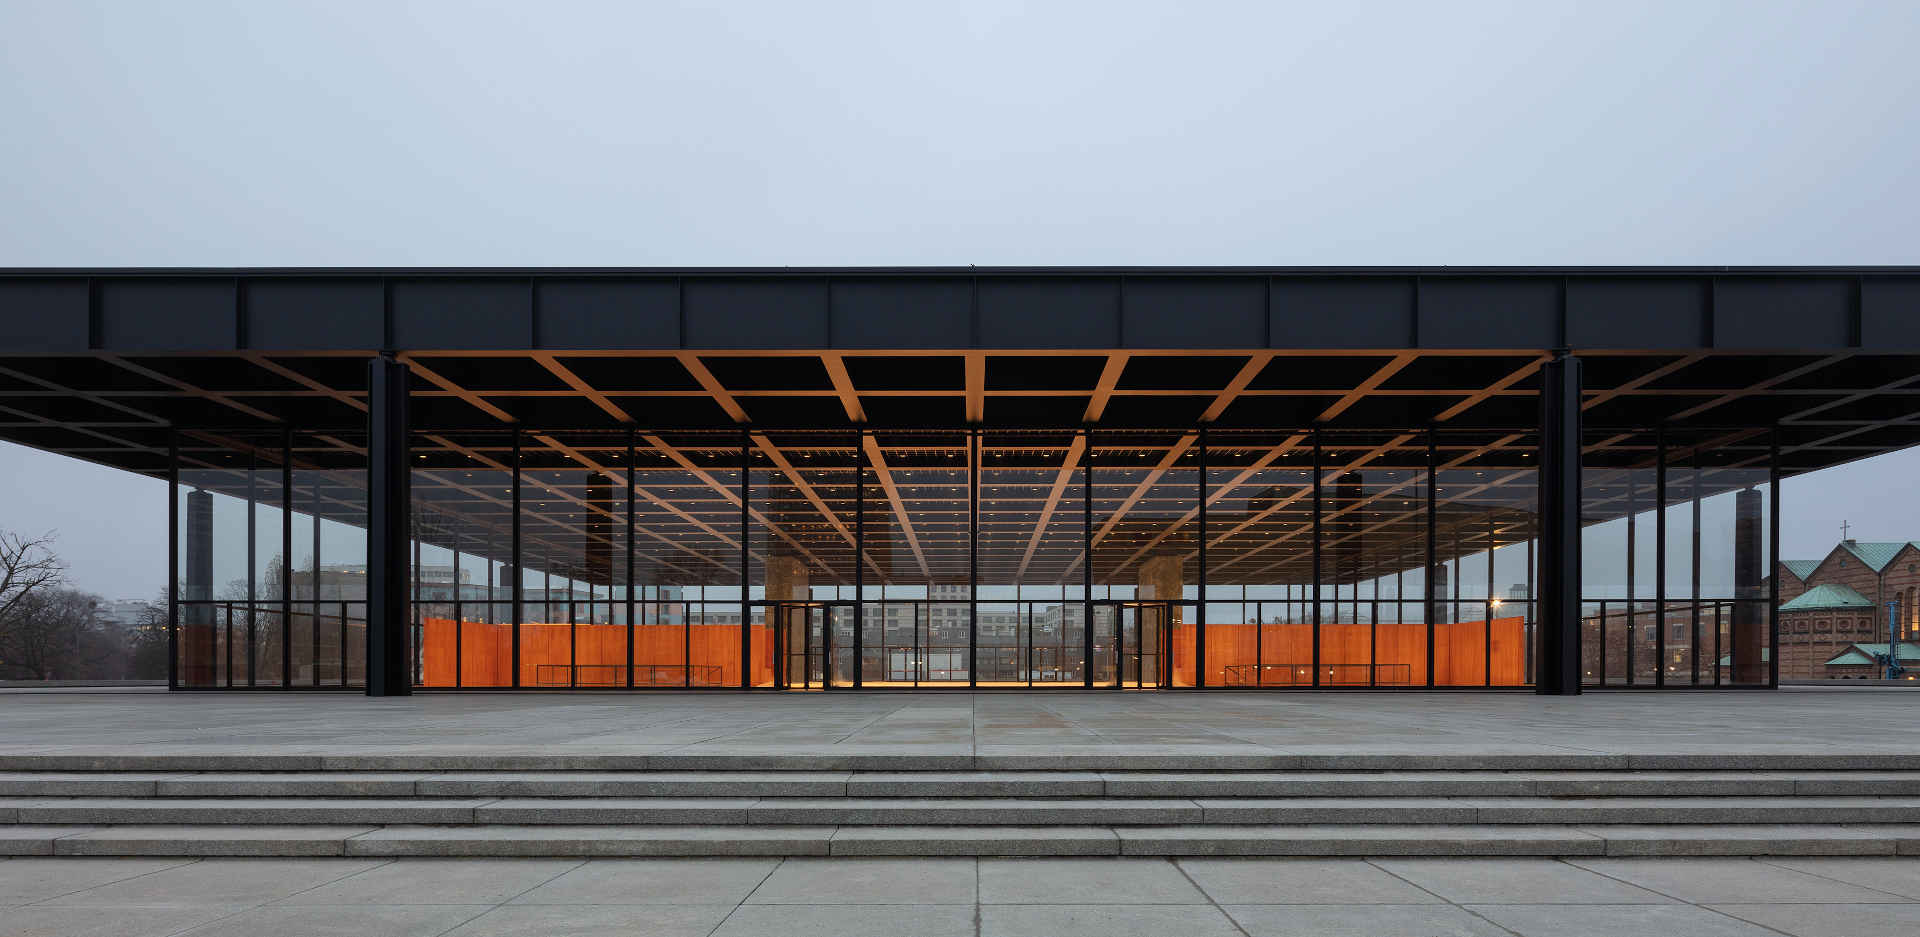 The keys to the Neue Nationalgalerie will be handed over on 29 April 2021